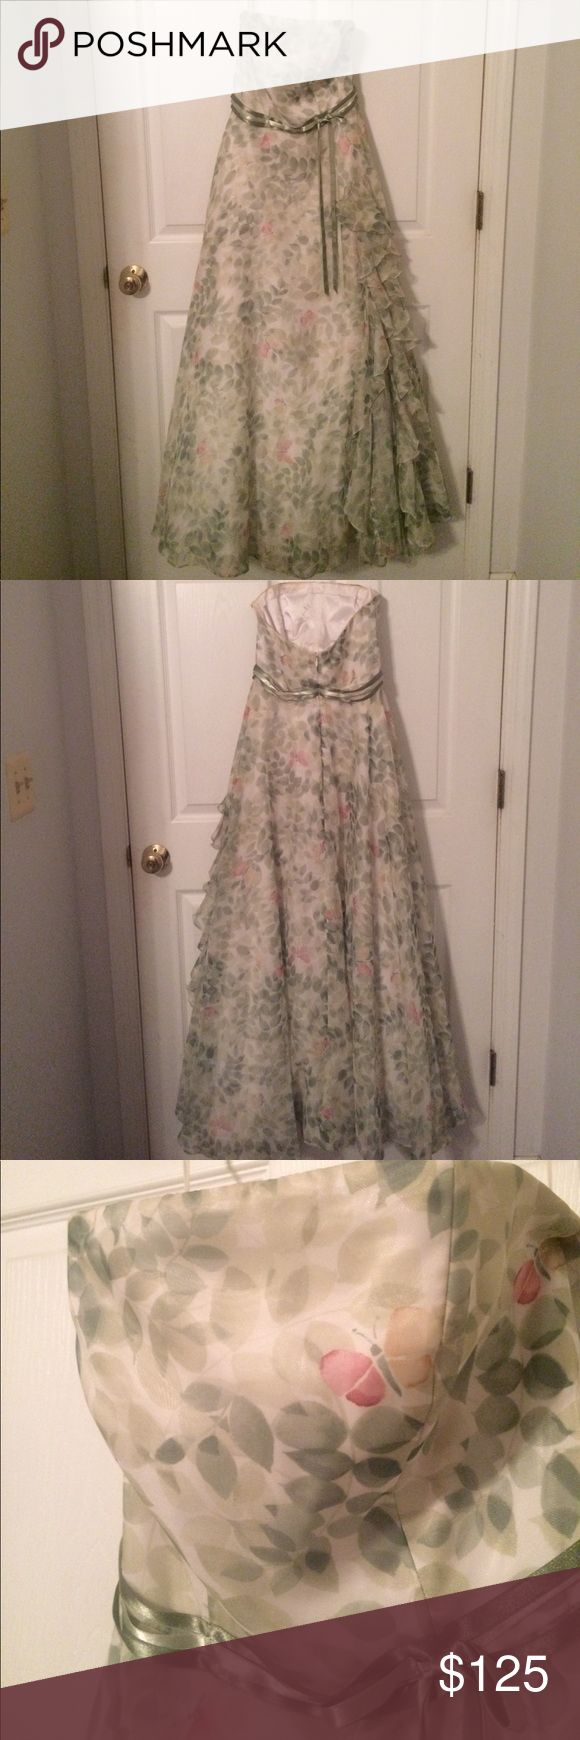 Adorable green leaf patterned tube top dress Light green leaf print dress with sweet butterflies scattered about. Tube top. Green ribbon across. Worn to one prom. Jovani Dresses